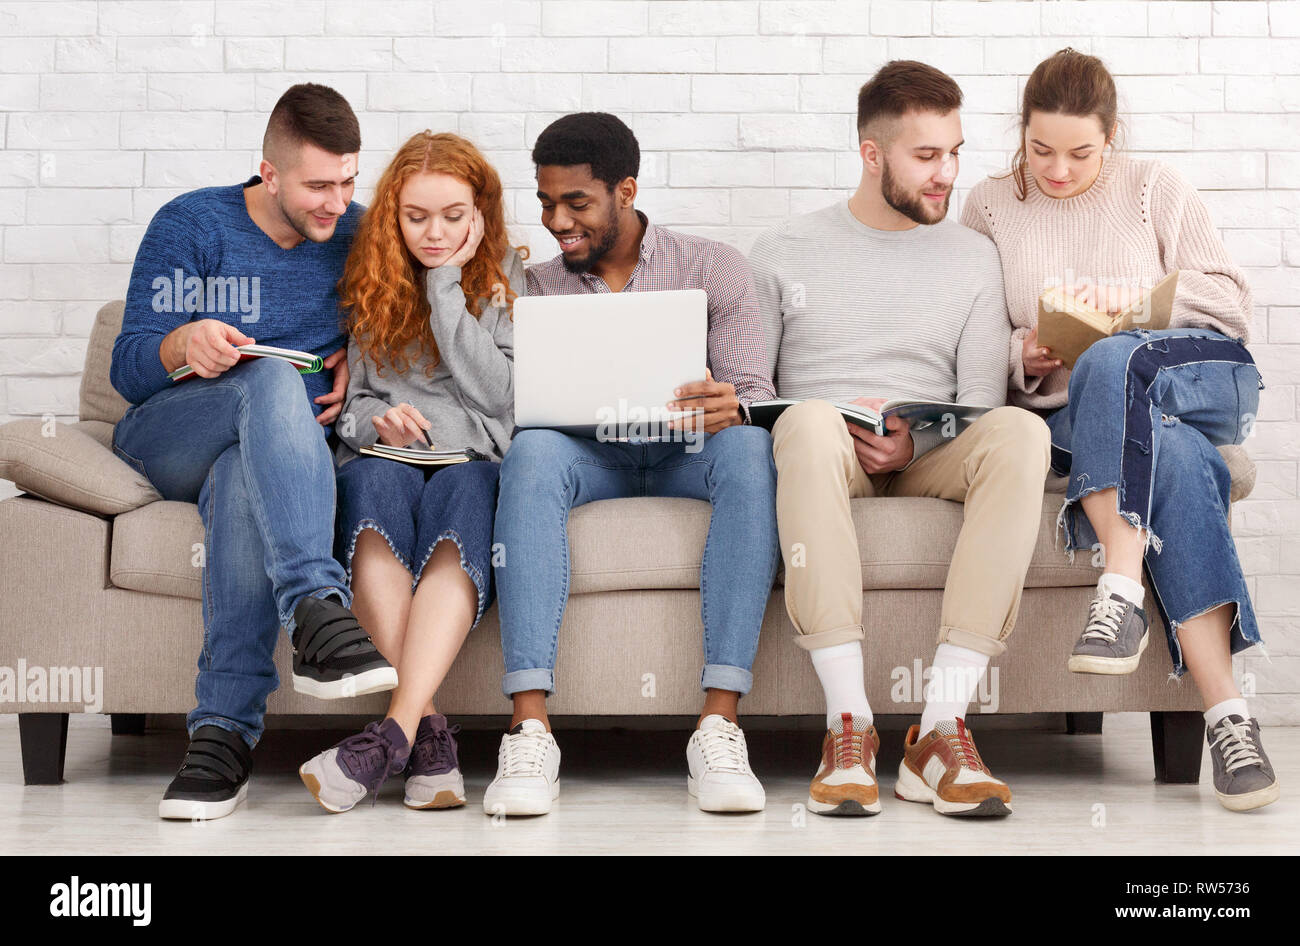 Diverse students preparing for exams and studying at home - Stock Image